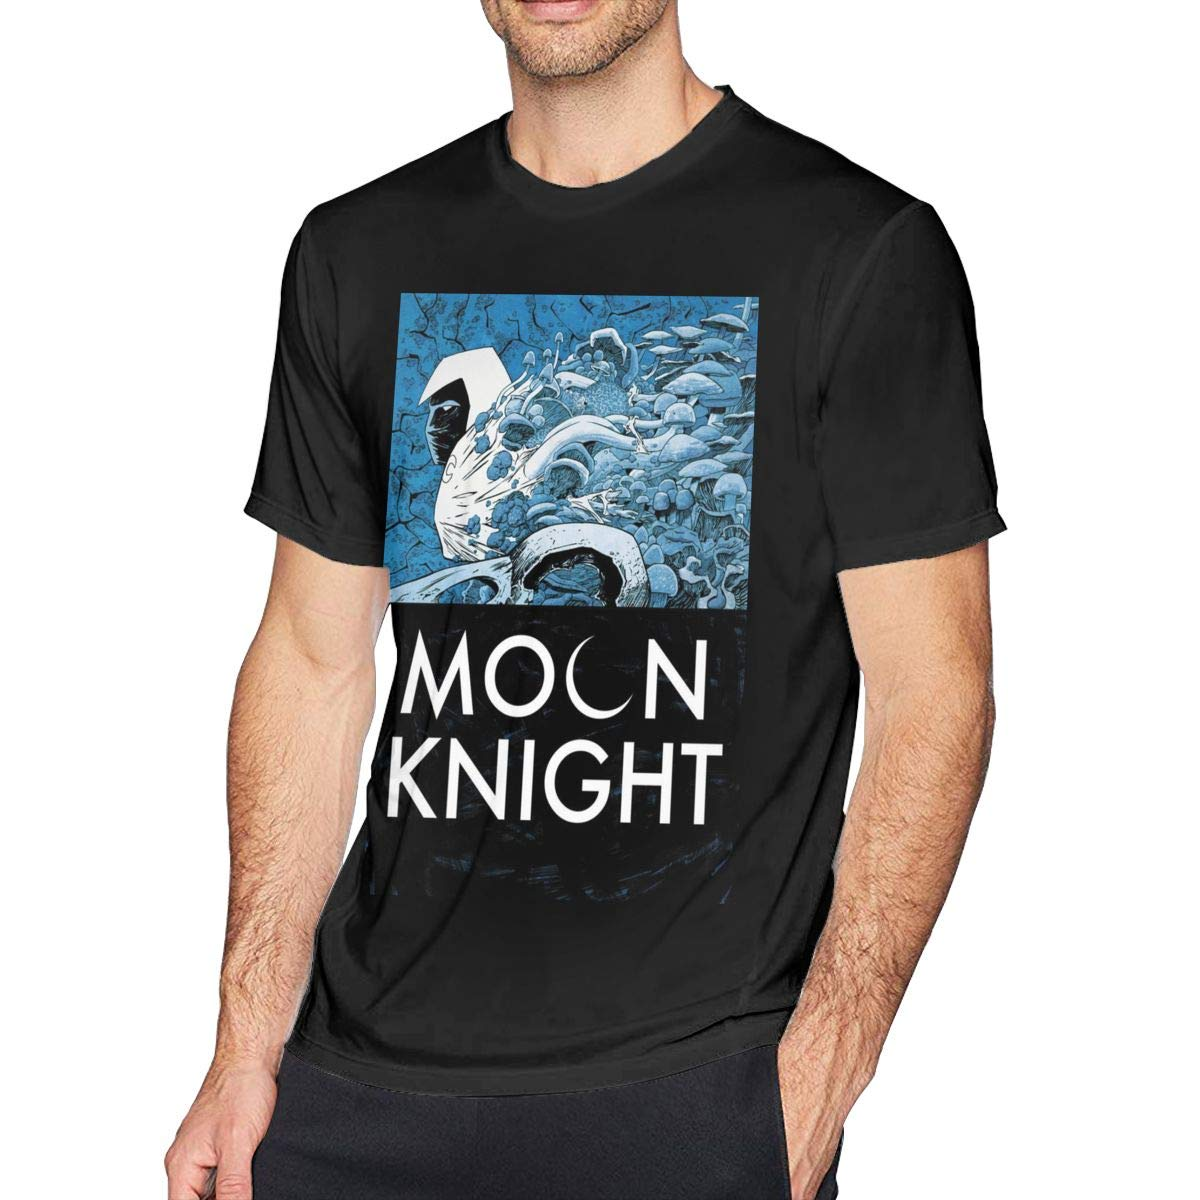 Bfcxbgdsig Moon Knight Soft and Comfortable Fashionable T-Shirt with Round Collar Black